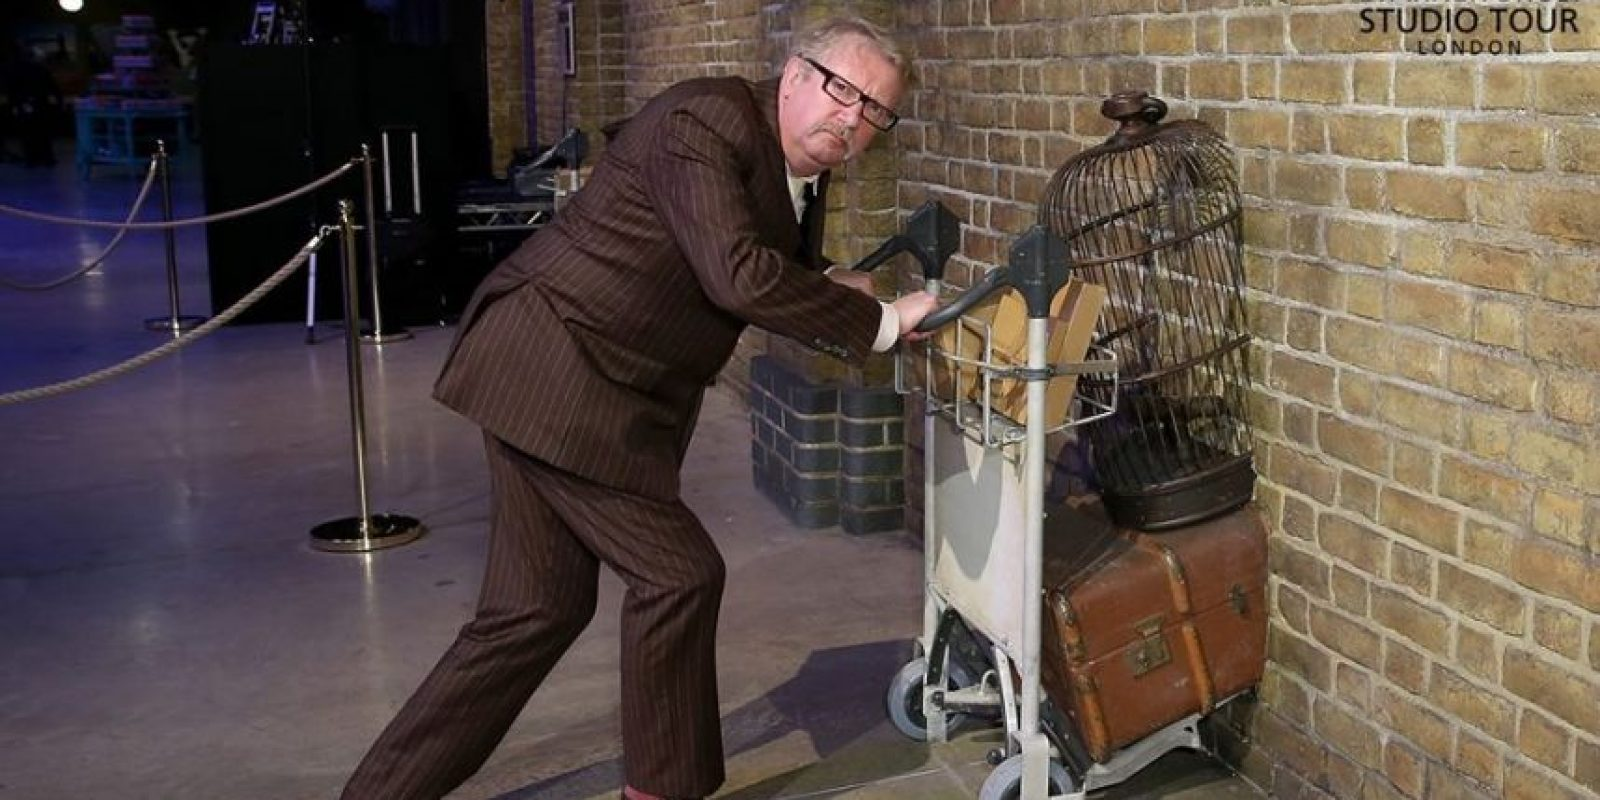 Mark Williams interpretó al papá de Ron Weasley Foto: Facebook/wbtourlondon